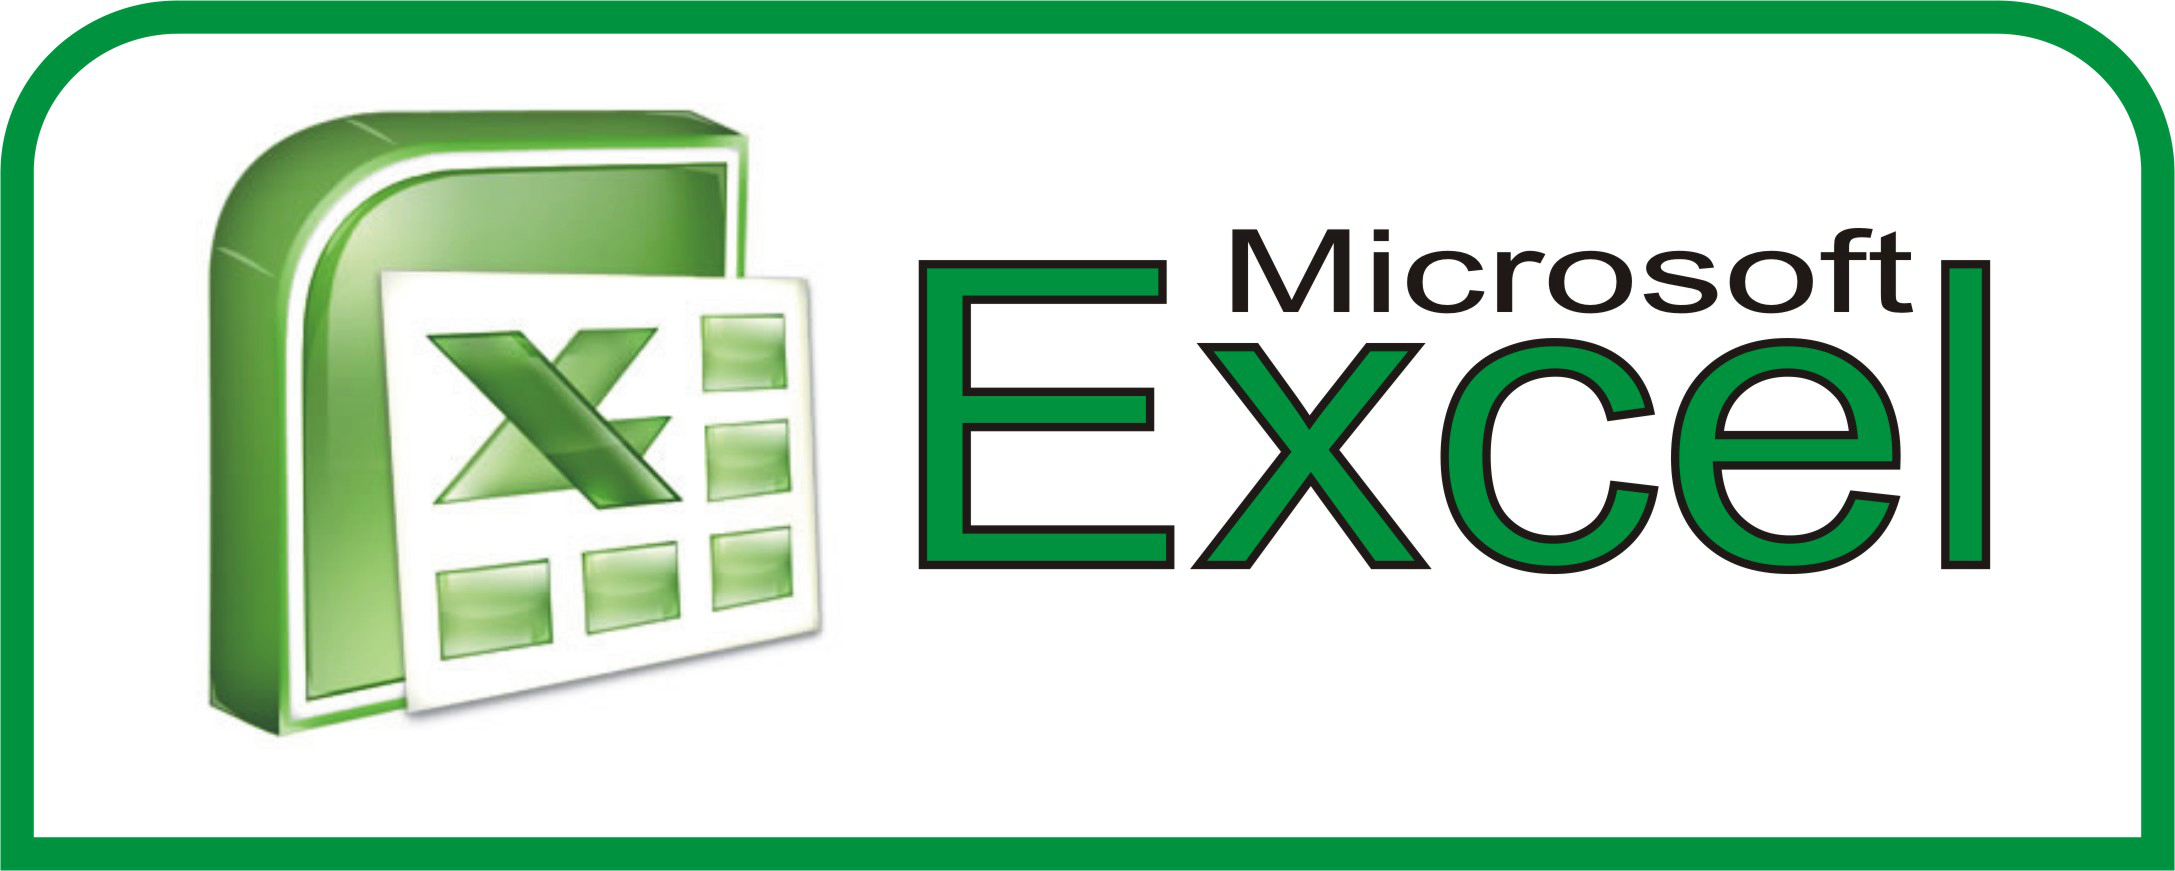 Ediblewildsus  Ravishing  Excel Shortcuts You Probably Didnt Know About  Techdissected With Exquisite How To Plot Graphs In Excel Besides Excel Two Formulas In One Cell Furthermore Showing Formulas In Excel With Delightful Kaplan Meier Curve Excel Also Excel Enable Macro In Addition Payroll Template Excel And Create Mail Merge From Excel As Well As Remove Password Excel  Additionally Lpad In Excel From Techdissectedcom With Ediblewildsus  Exquisite  Excel Shortcuts You Probably Didnt Know About  Techdissected With Delightful How To Plot Graphs In Excel Besides Excel Two Formulas In One Cell Furthermore Showing Formulas In Excel And Ravishing Kaplan Meier Curve Excel Also Excel Enable Macro In Addition Payroll Template Excel From Techdissectedcom